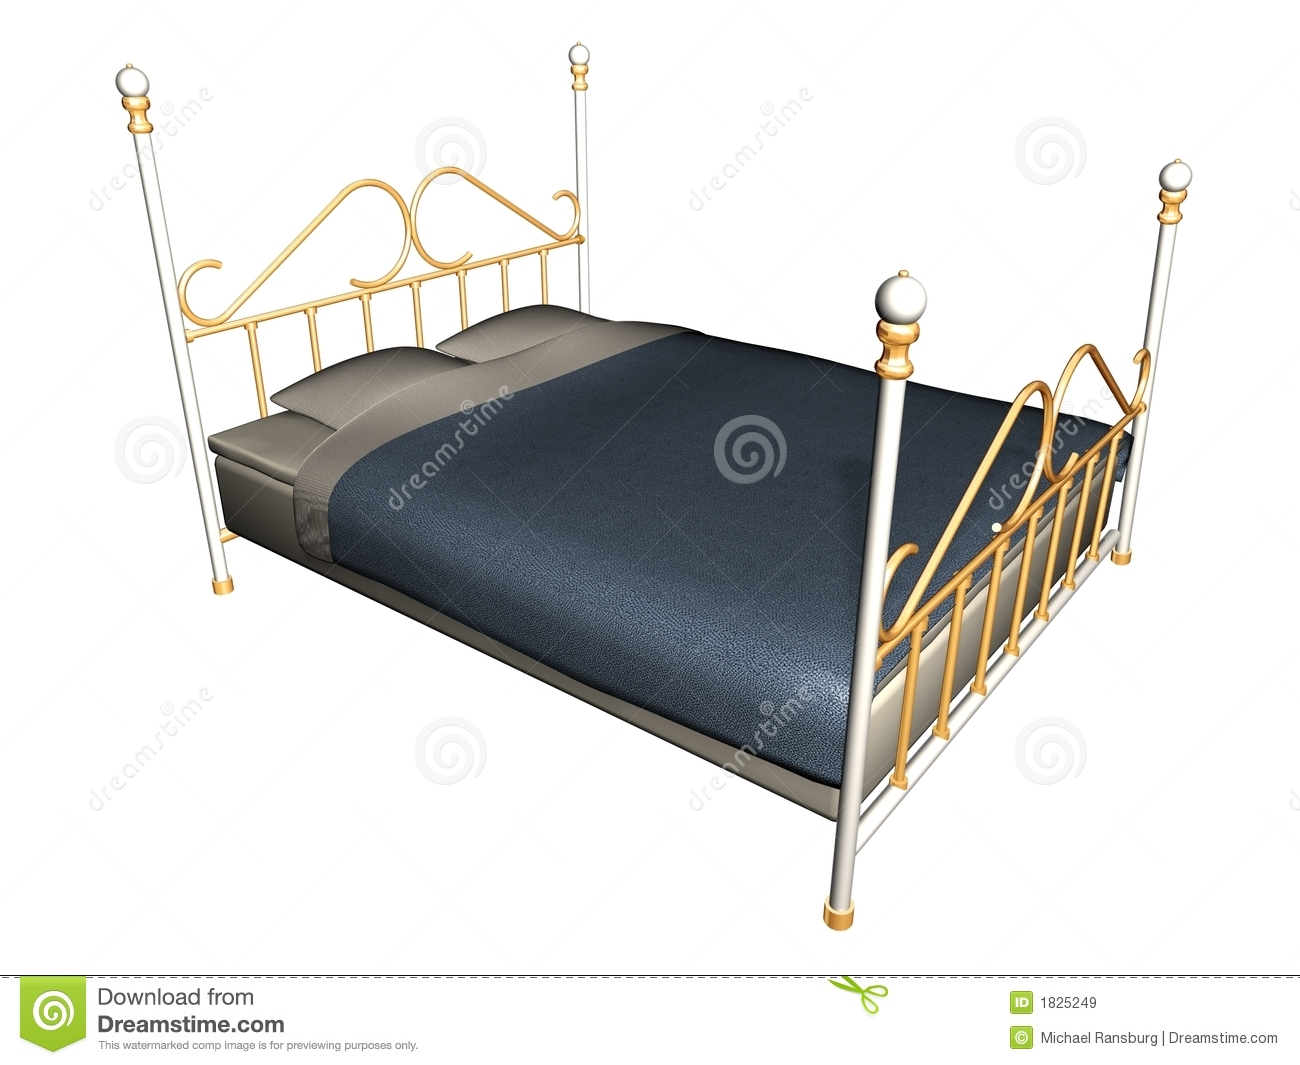 medieval bed royalty free stock images image 1825249